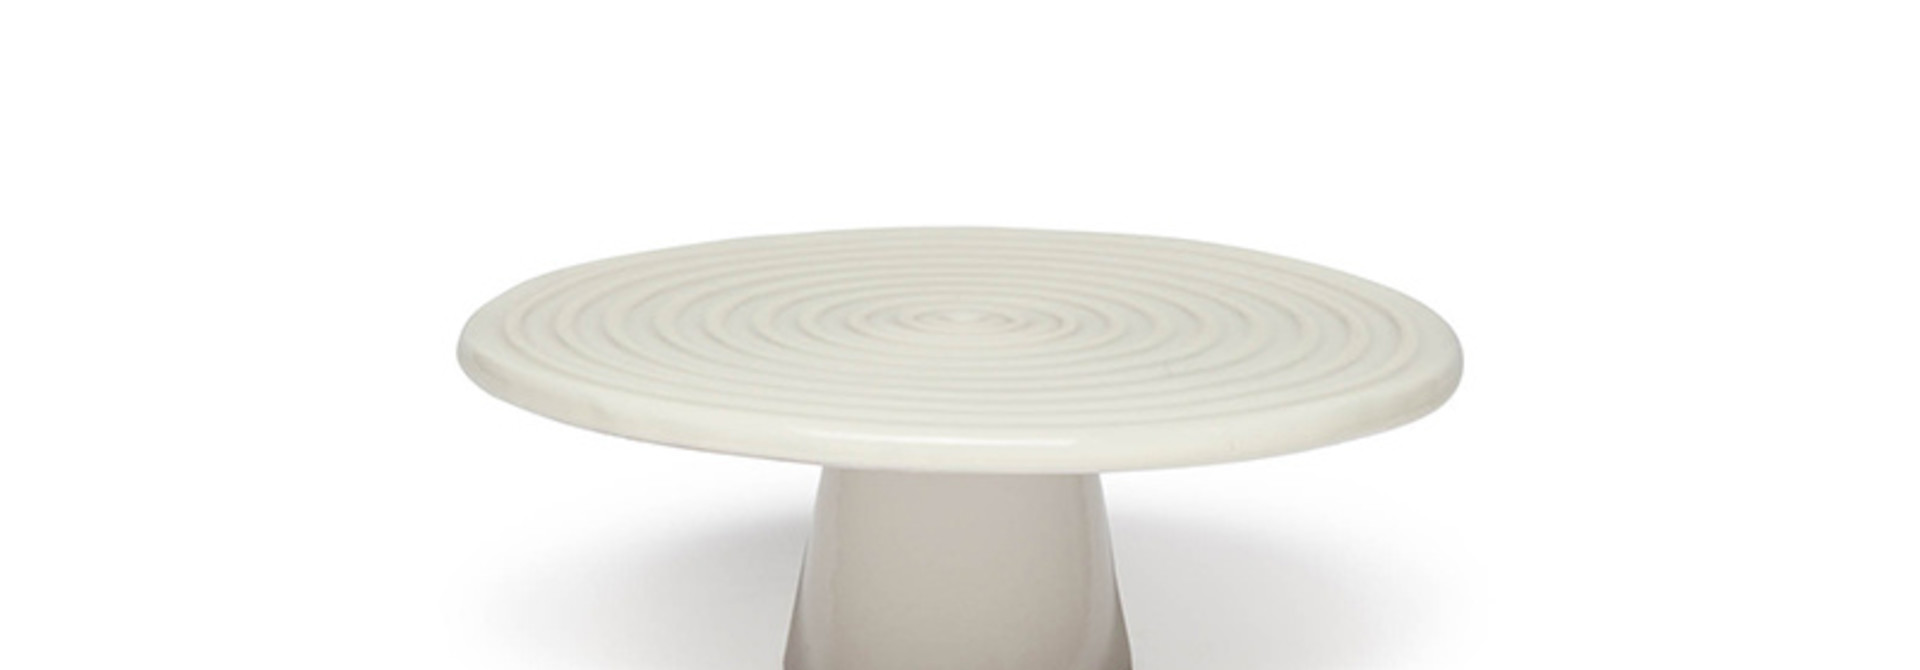 Food/Cake Stand - White - Small